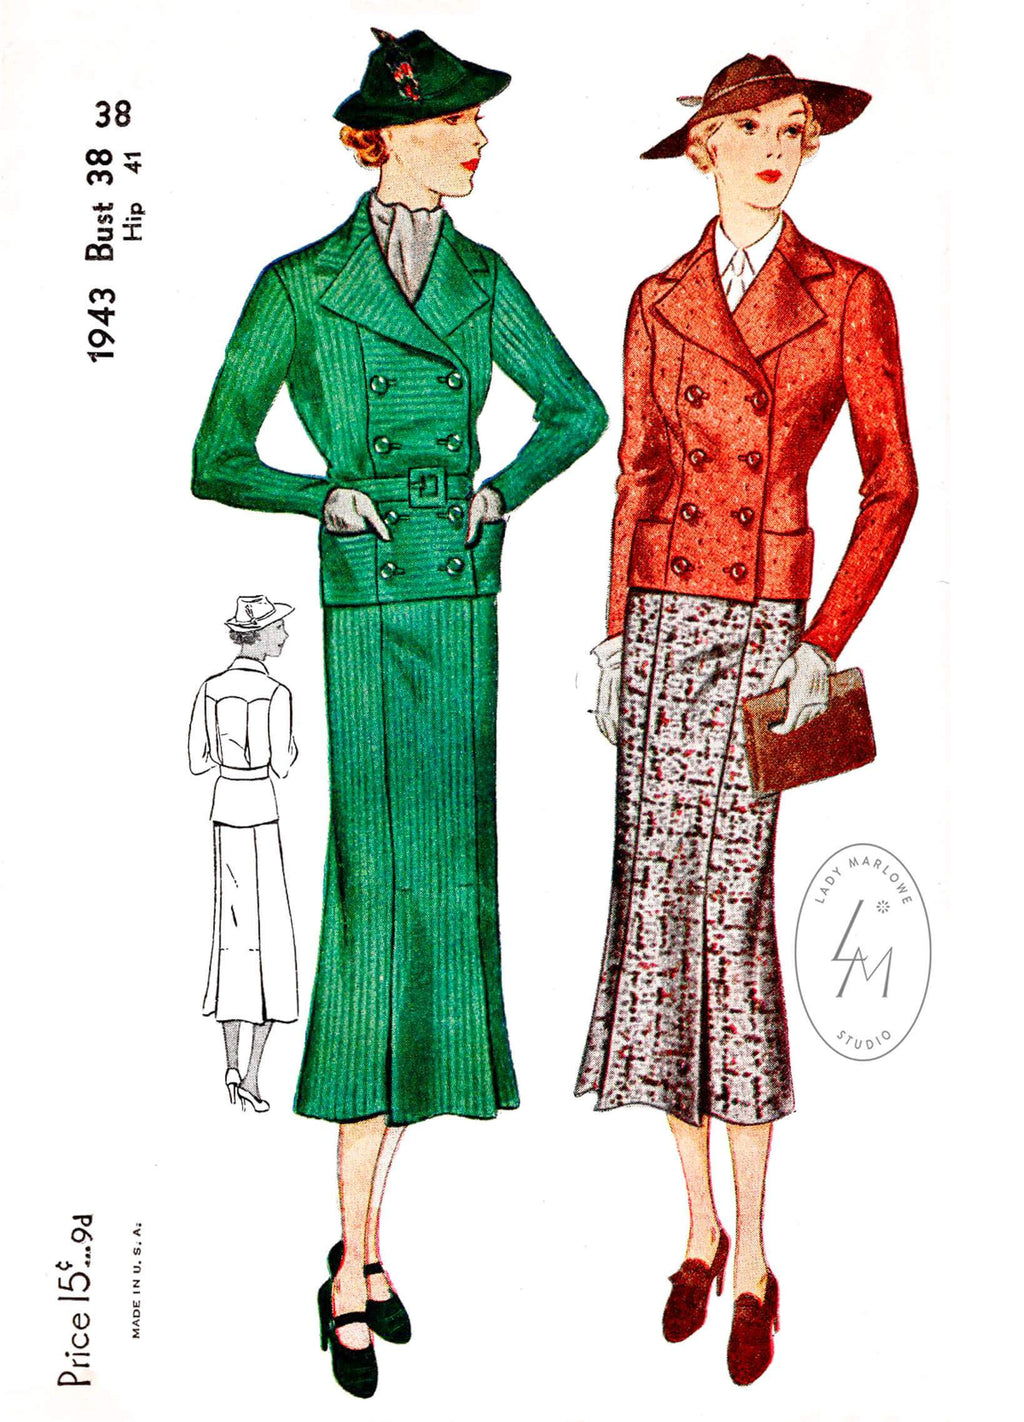 1930s 30s Simplicity 1943 2 piece suit and skirt ensemble double breasted jacket gored skirt vintage sewing pattern reproduction